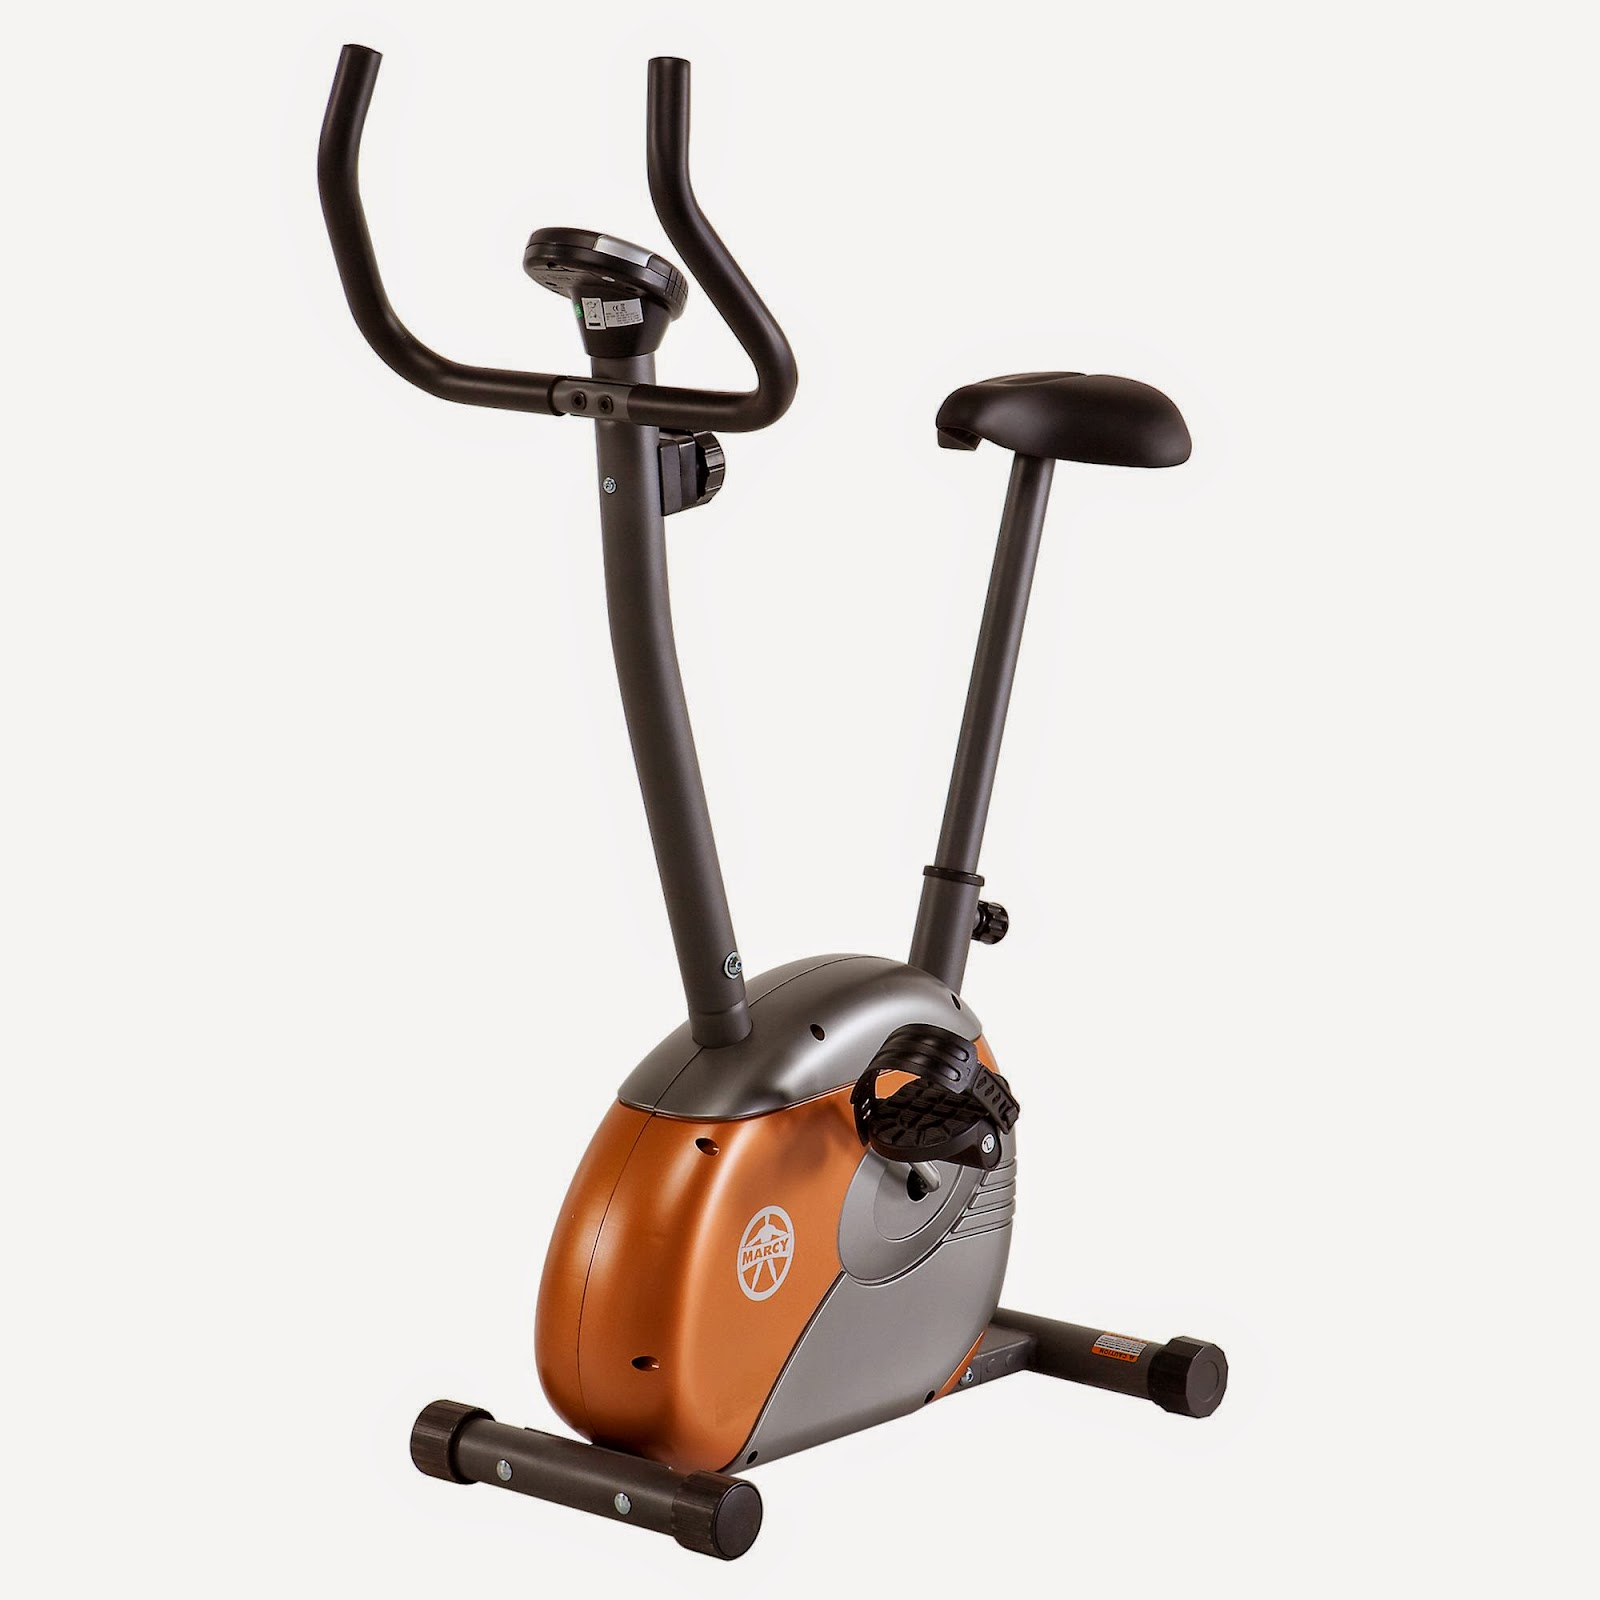 marcy me708 upright magnetic exercise bike review features 8 levels of magnetic resistance